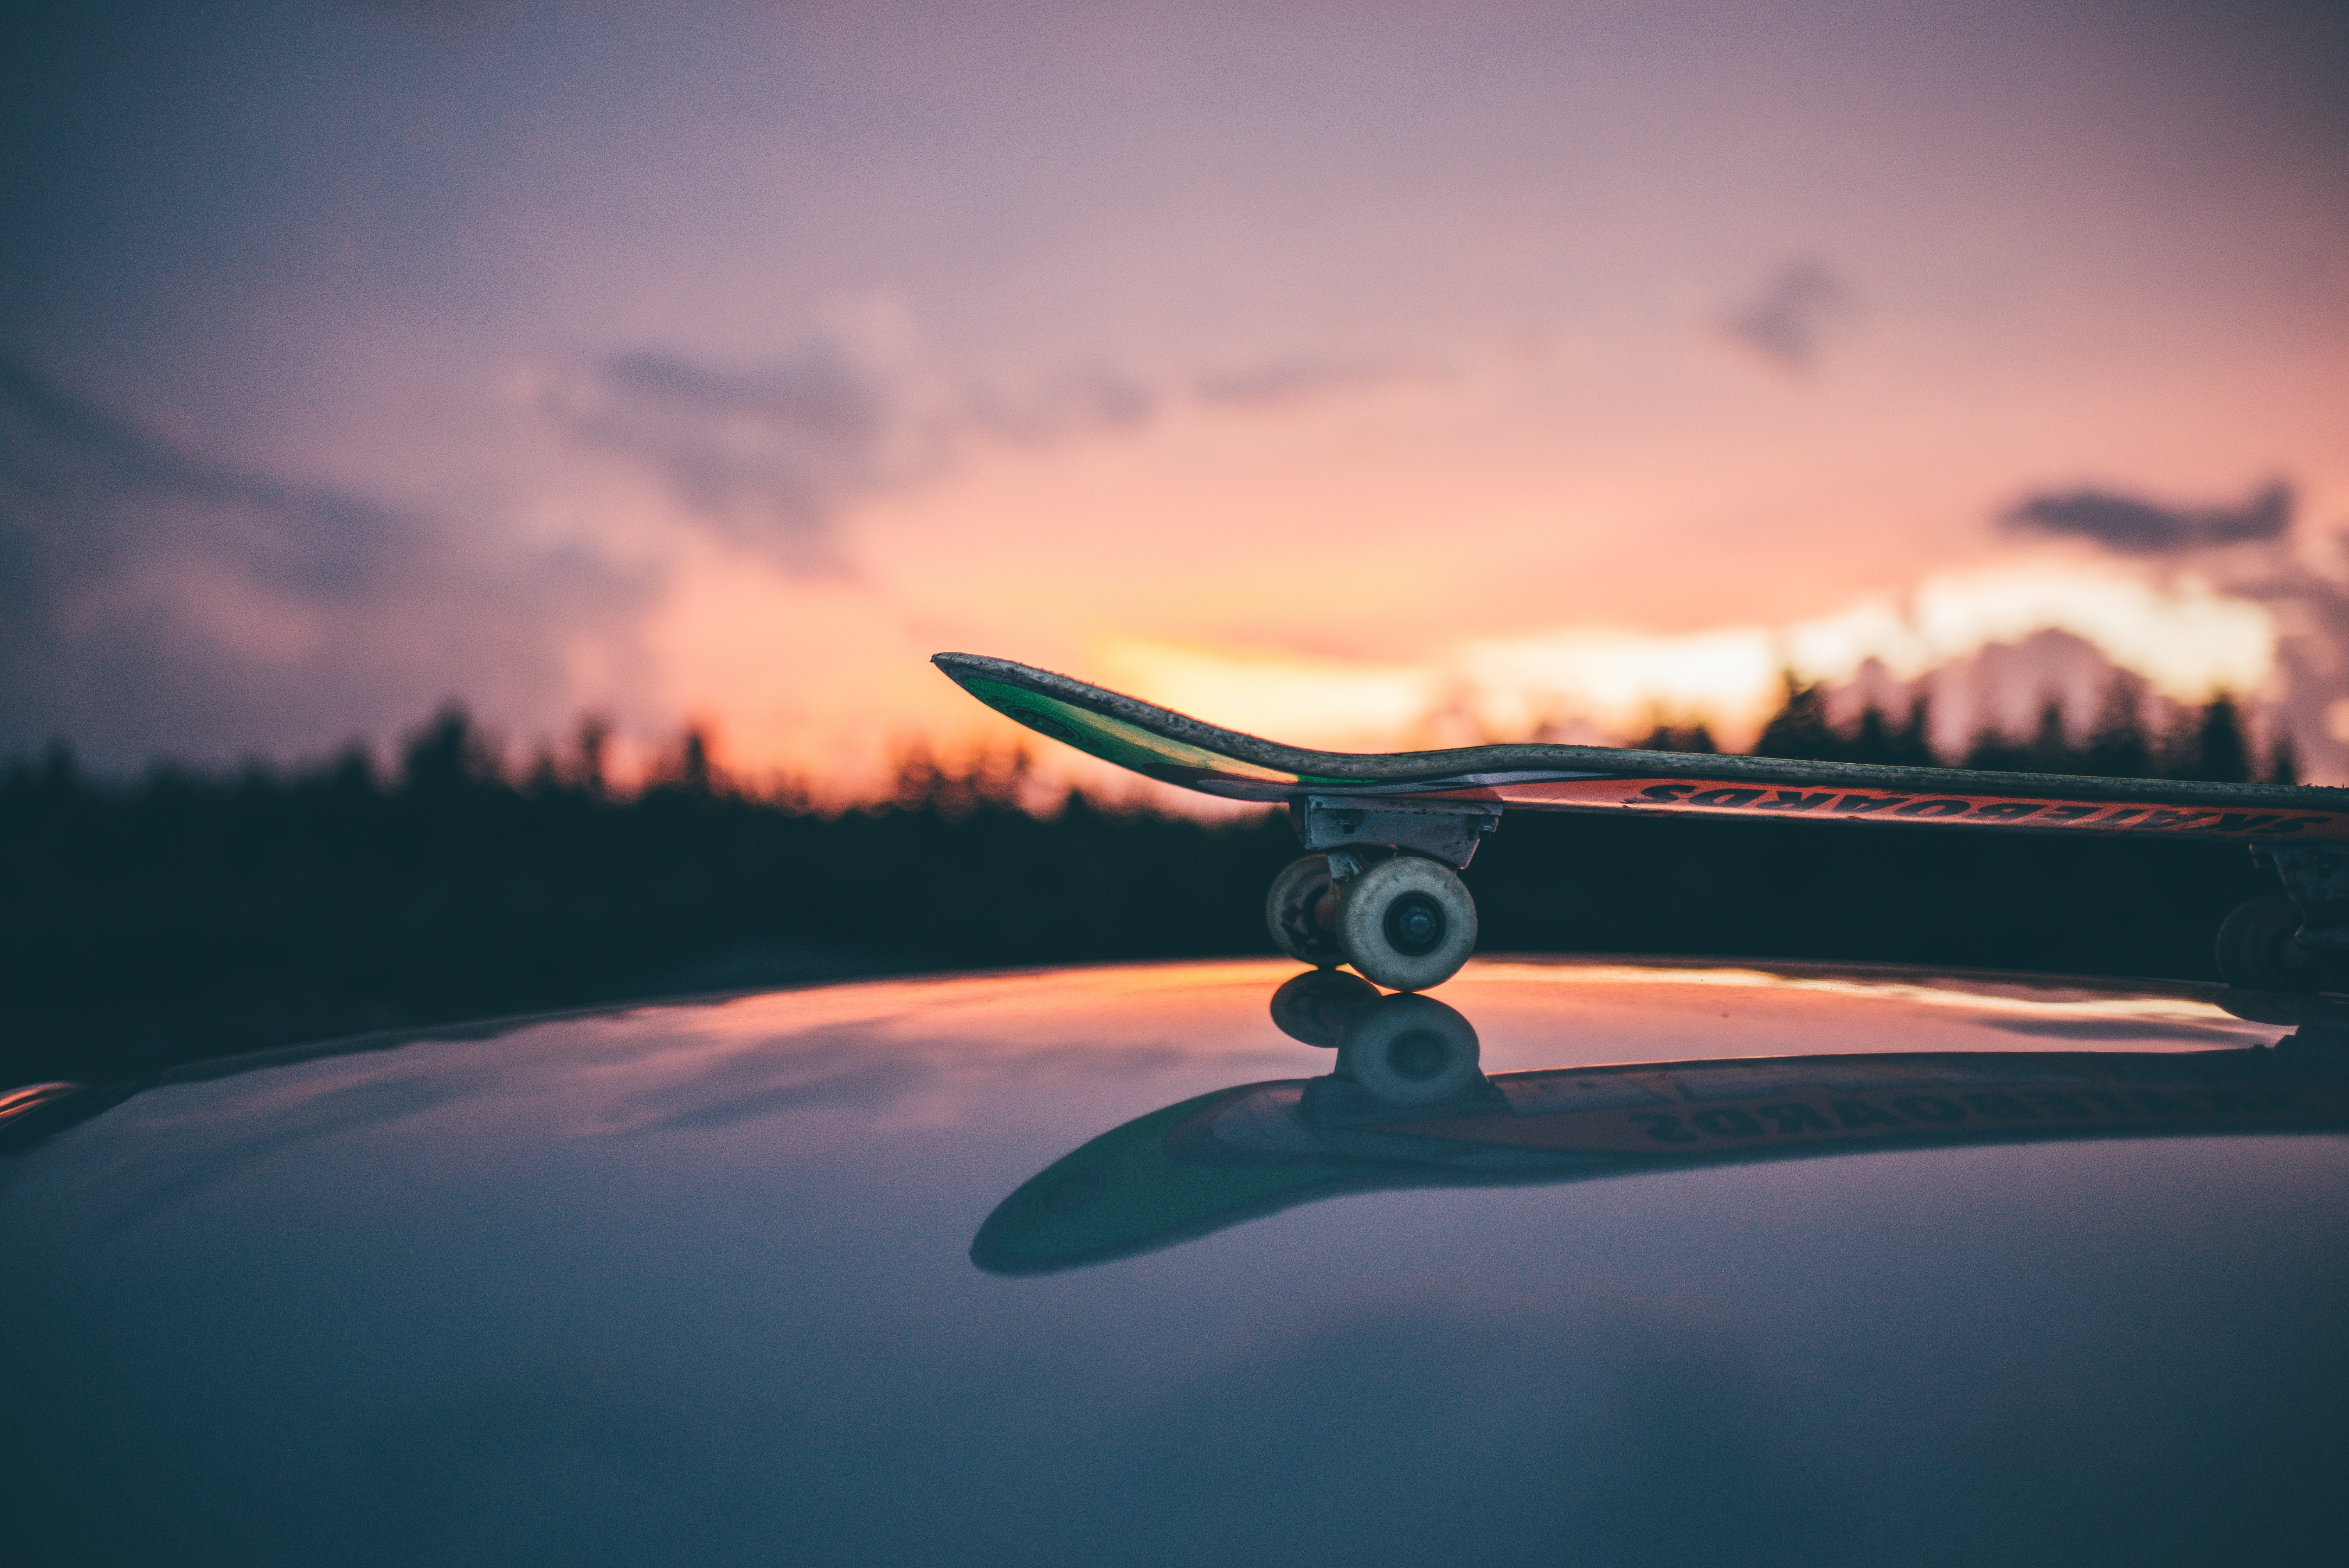 A skateboard on a reflective surface, with trees in the background and a purple sunset sky, Norrköping